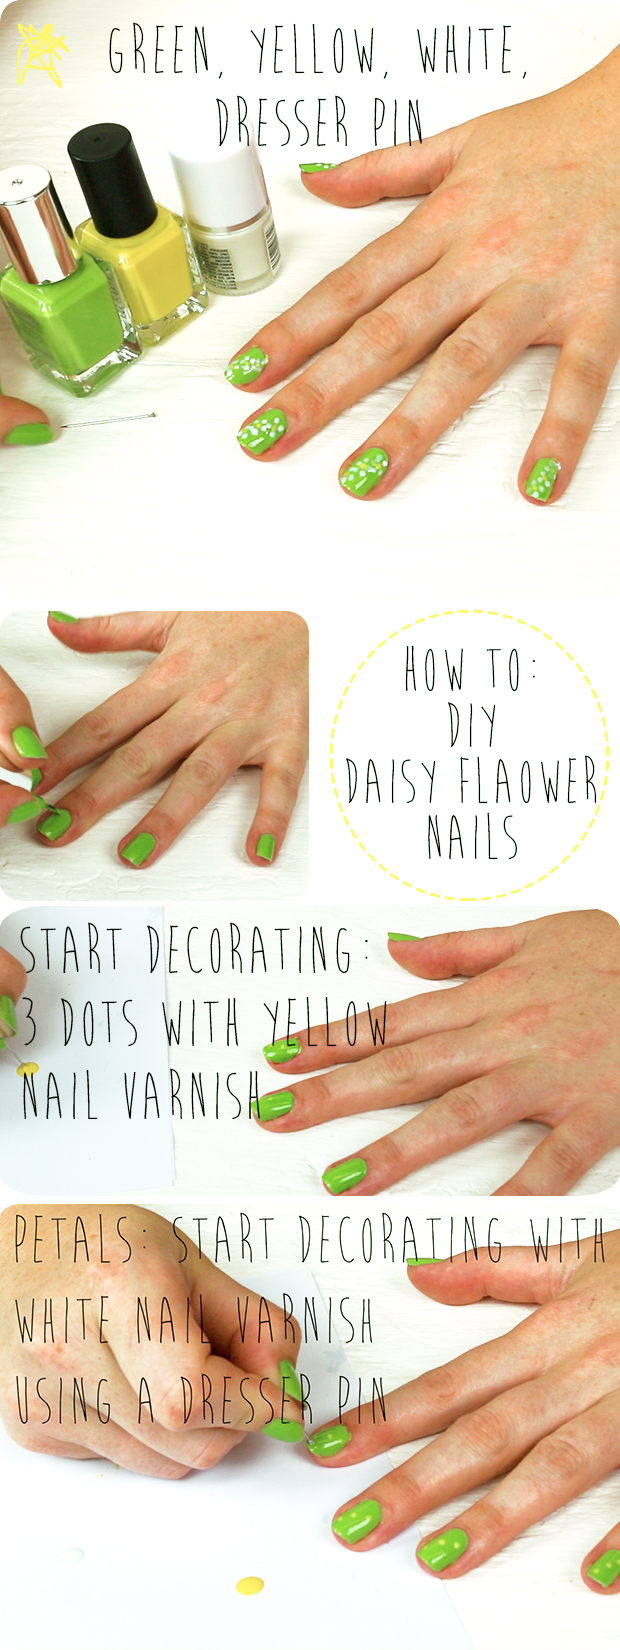 HOW TO: DIY Daisy Nails